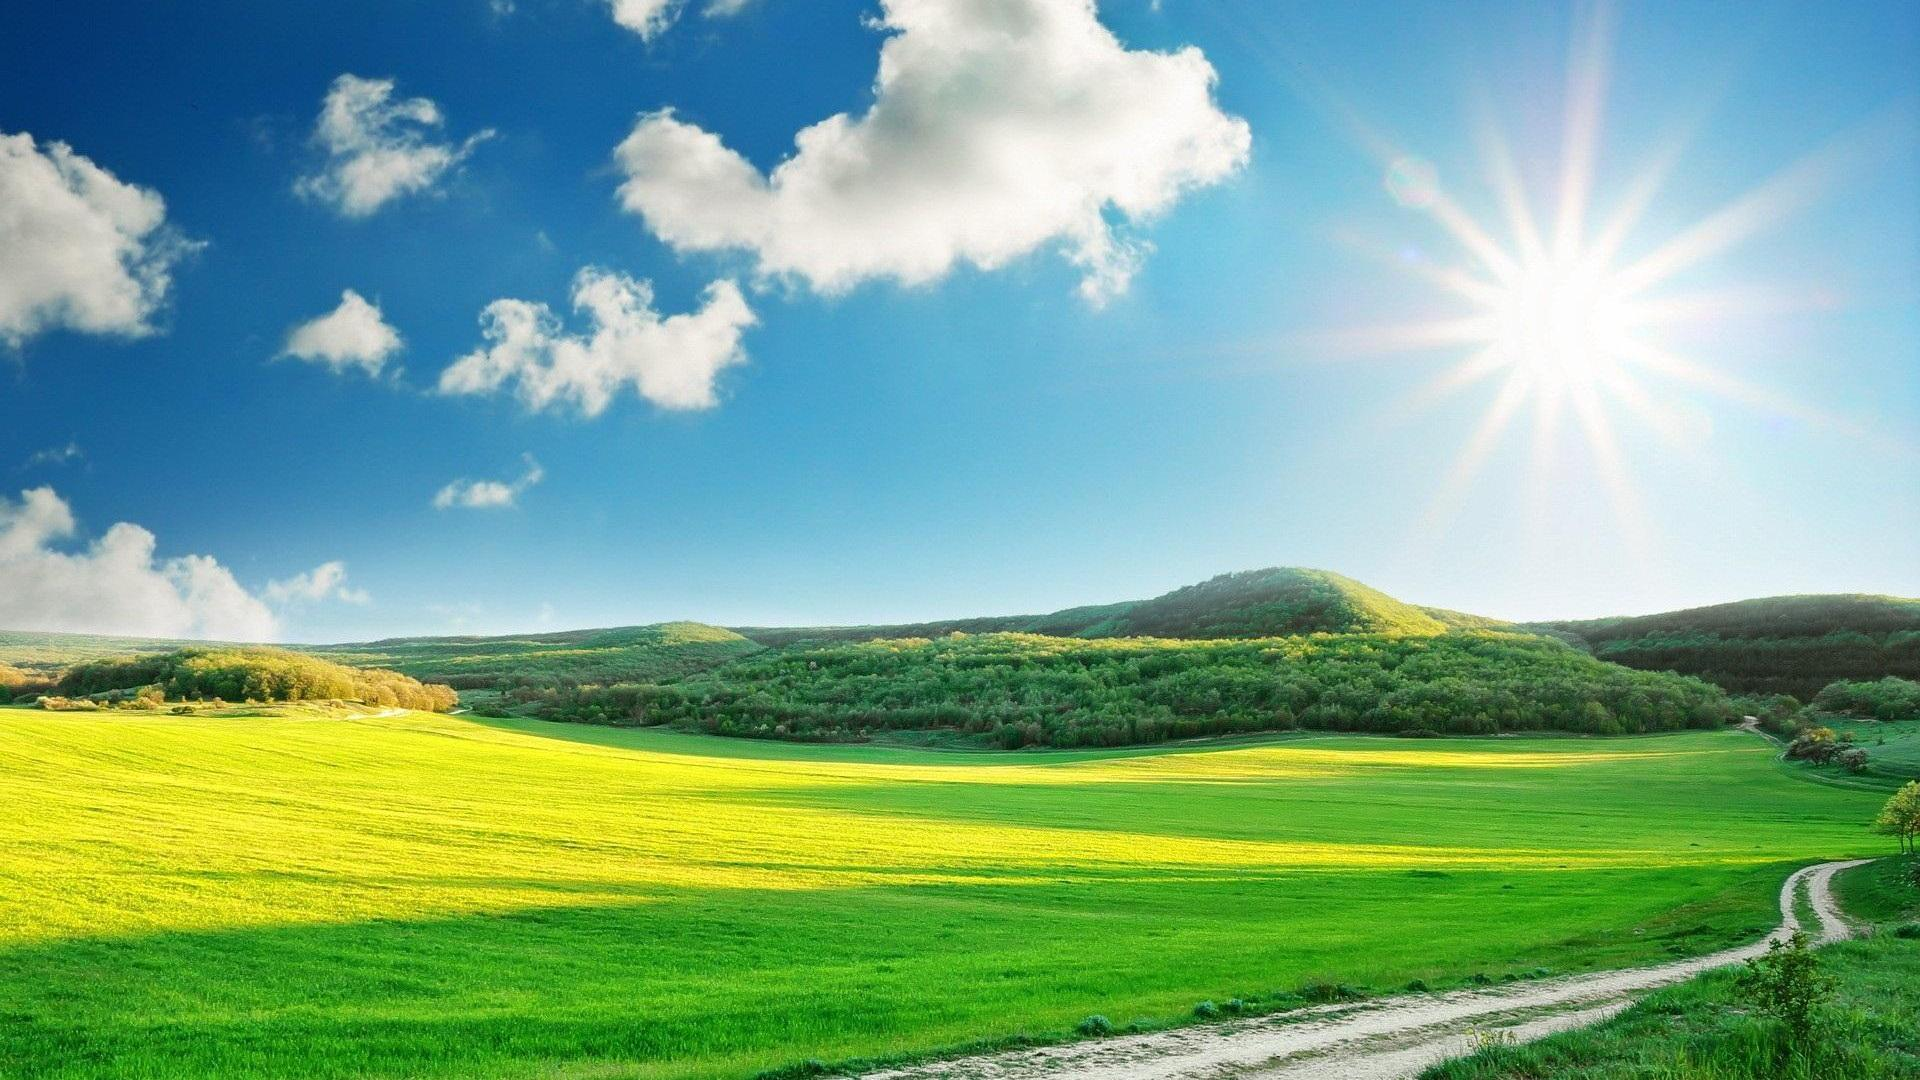 Amazing Sunny Day wallpapers